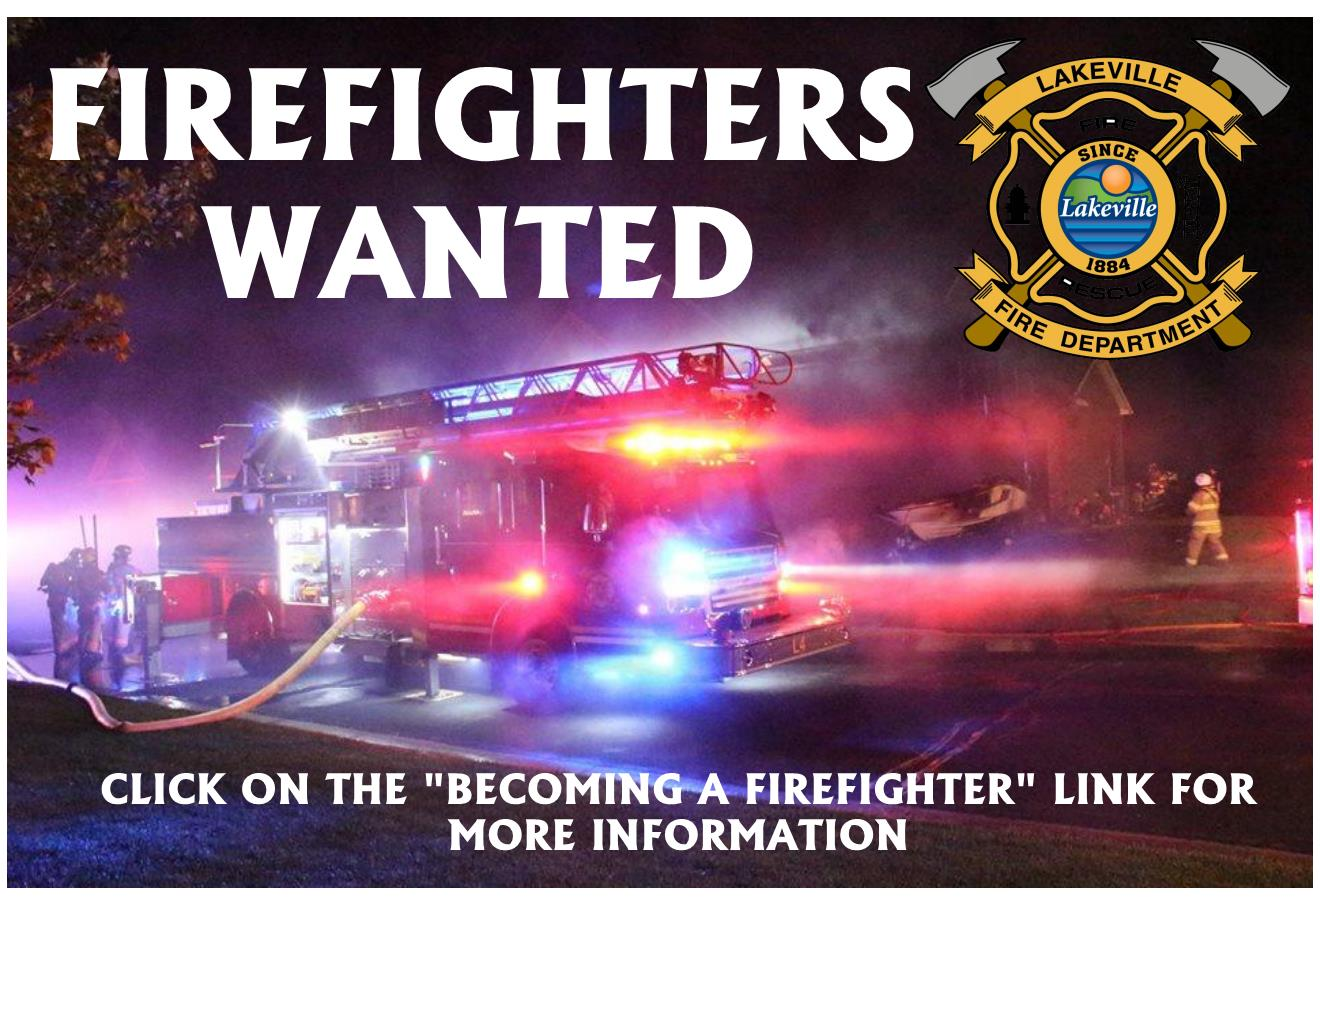 Firefighters Wanted